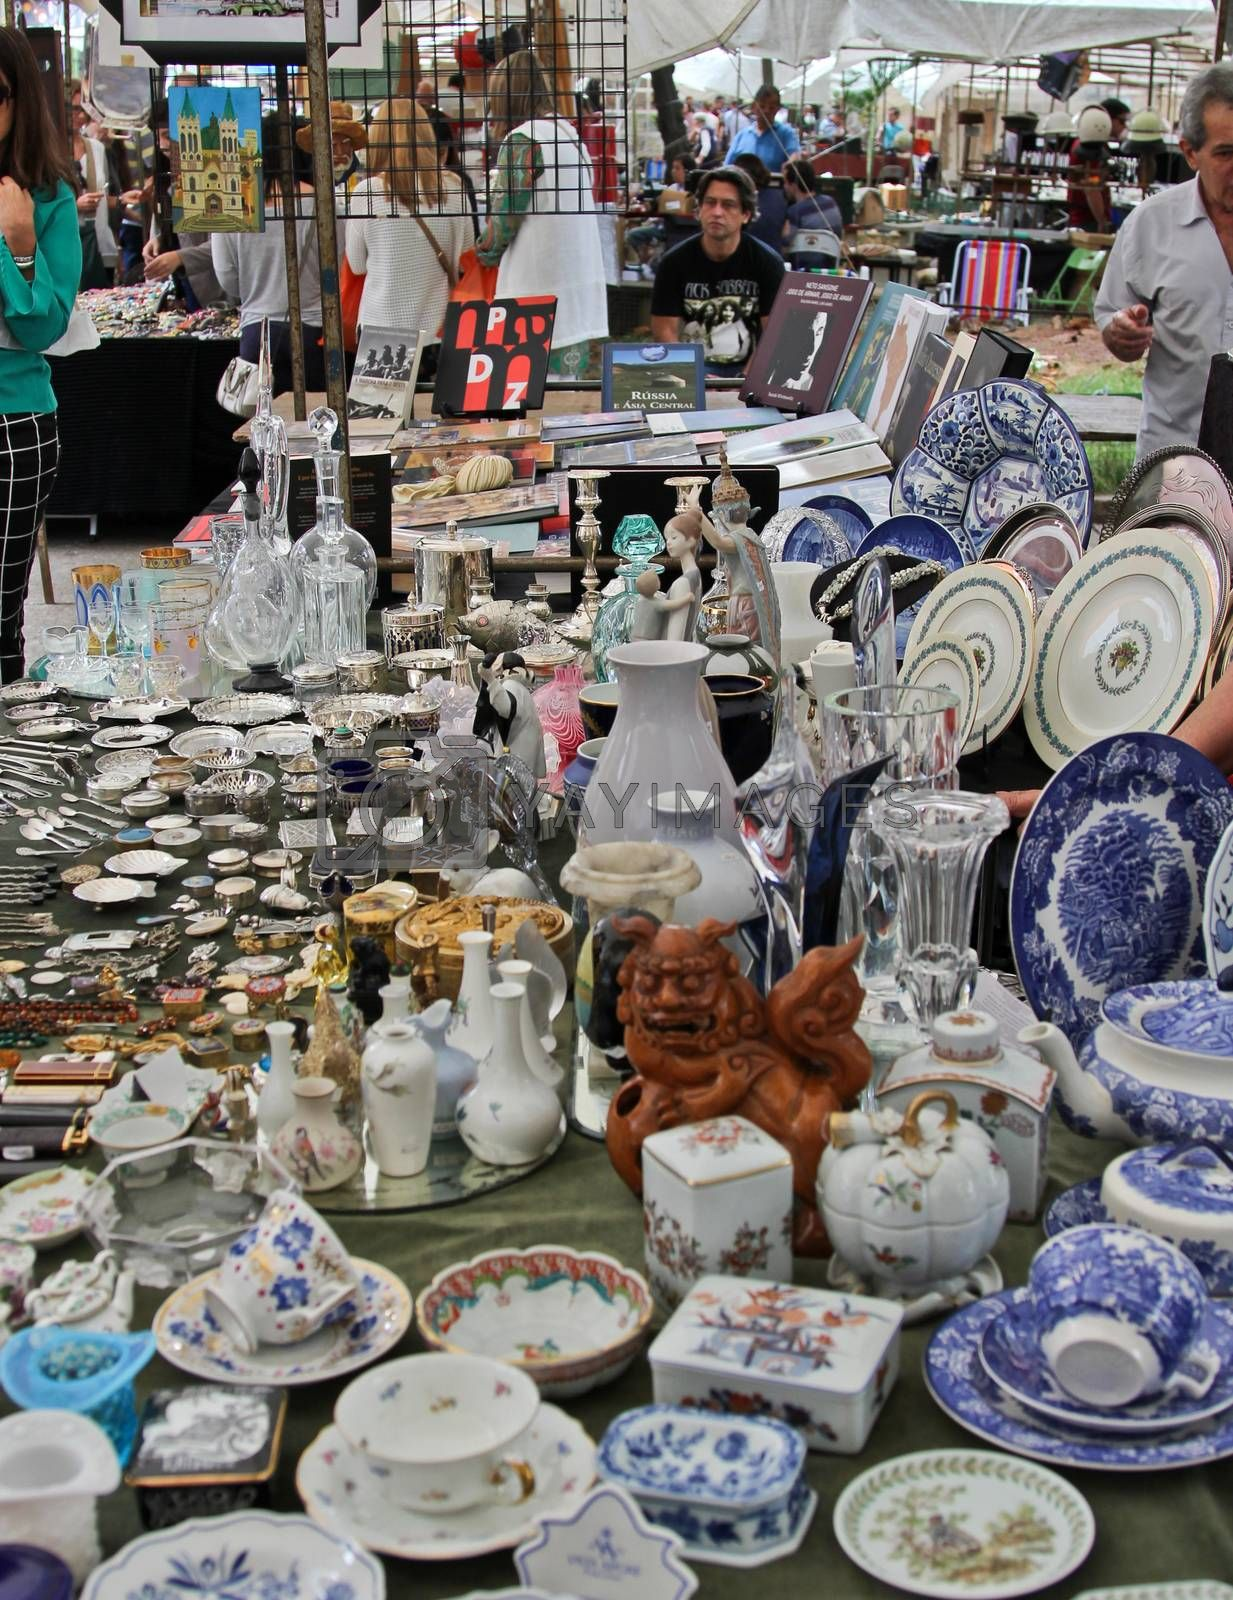 Sao Paulo, Brazil, July 18 2015: Detail of the traditional antique objects market that has been held all Mondays in Benedito Calixto square in Sao Paulo Brazil.